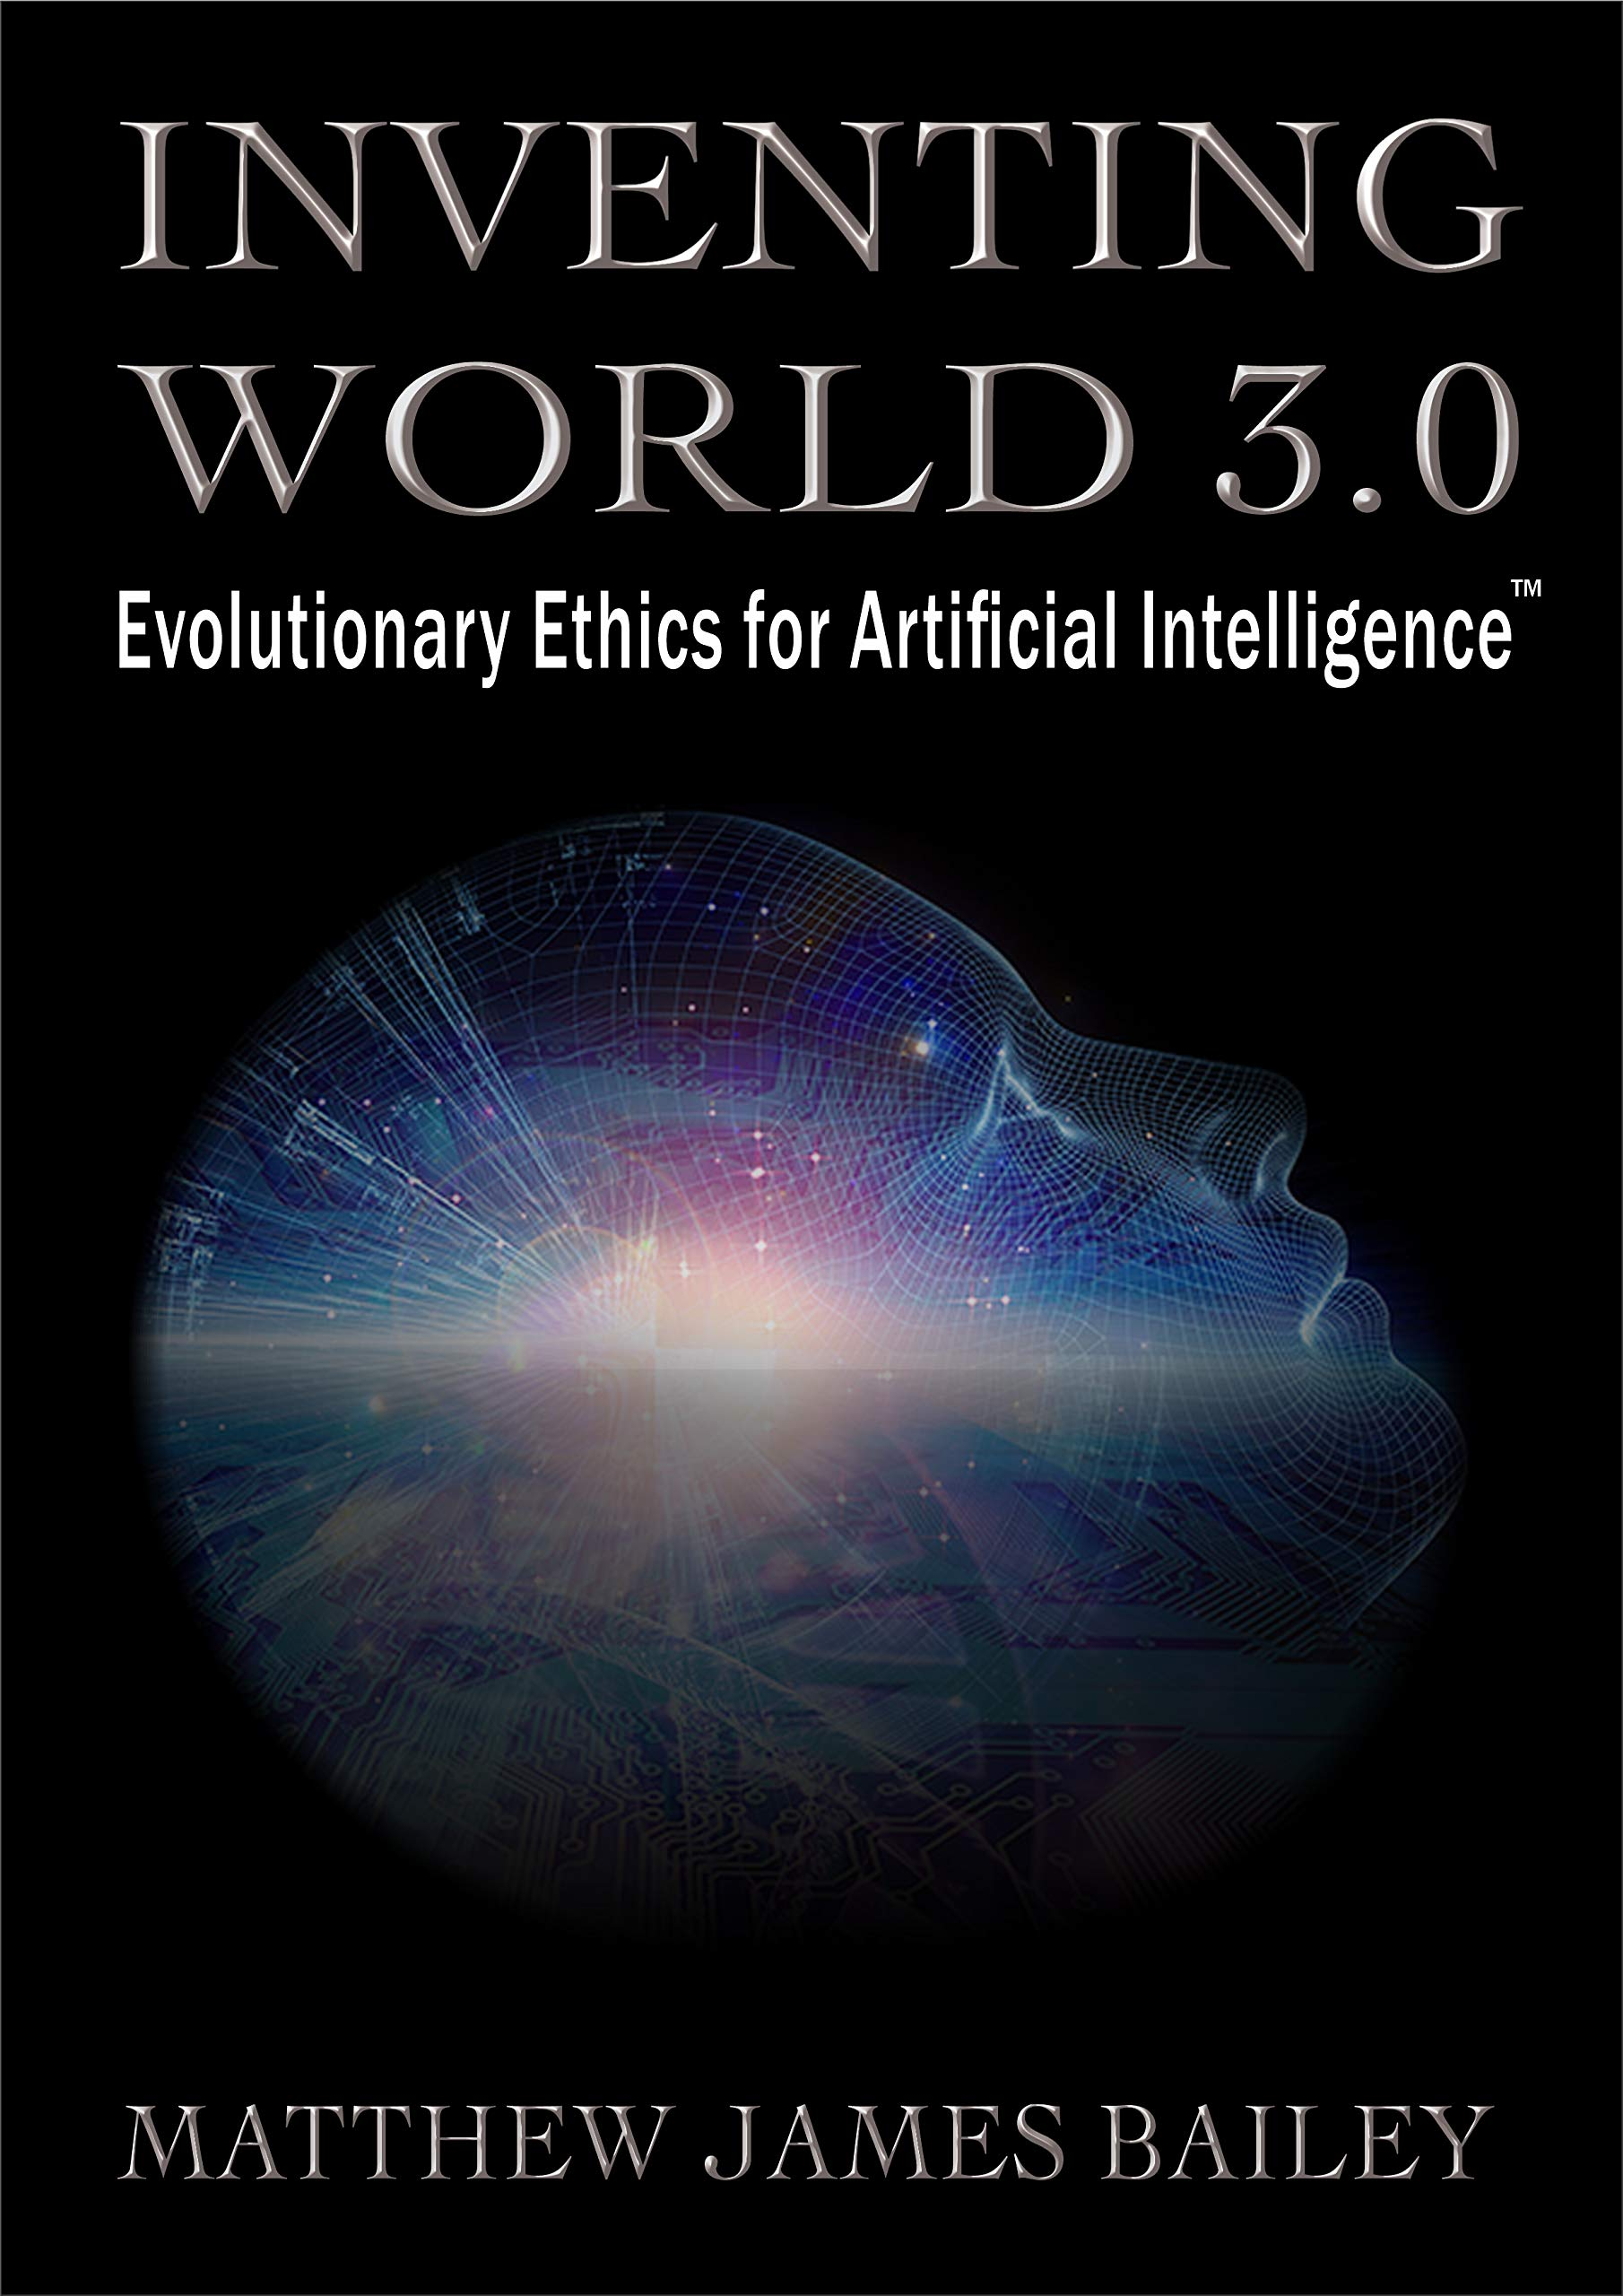 INVENTING WORLD 3.0: Evolutionary Ethics for Artificial Intelligence